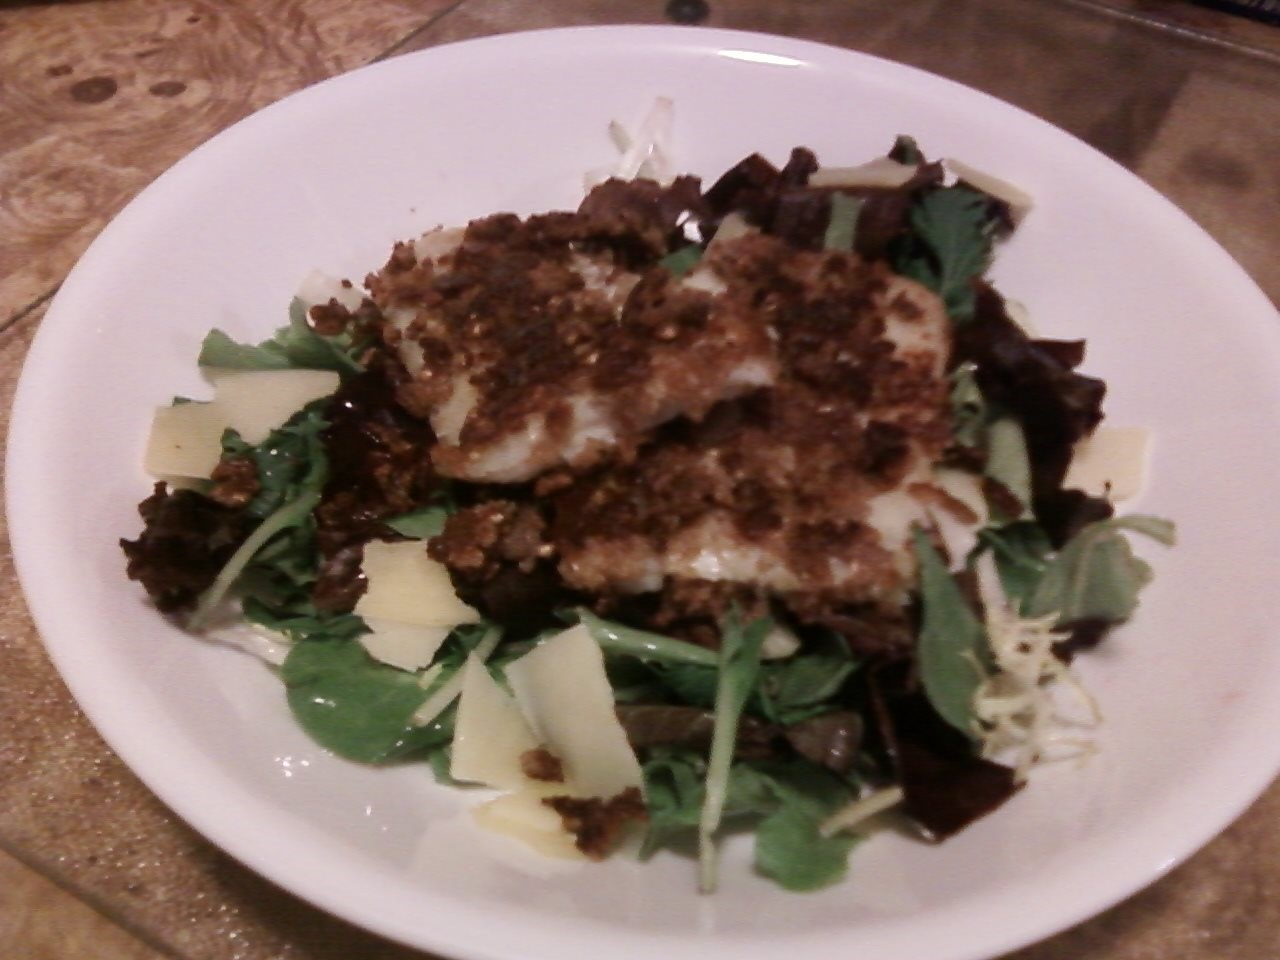 Fried Flounder Over Field Greens